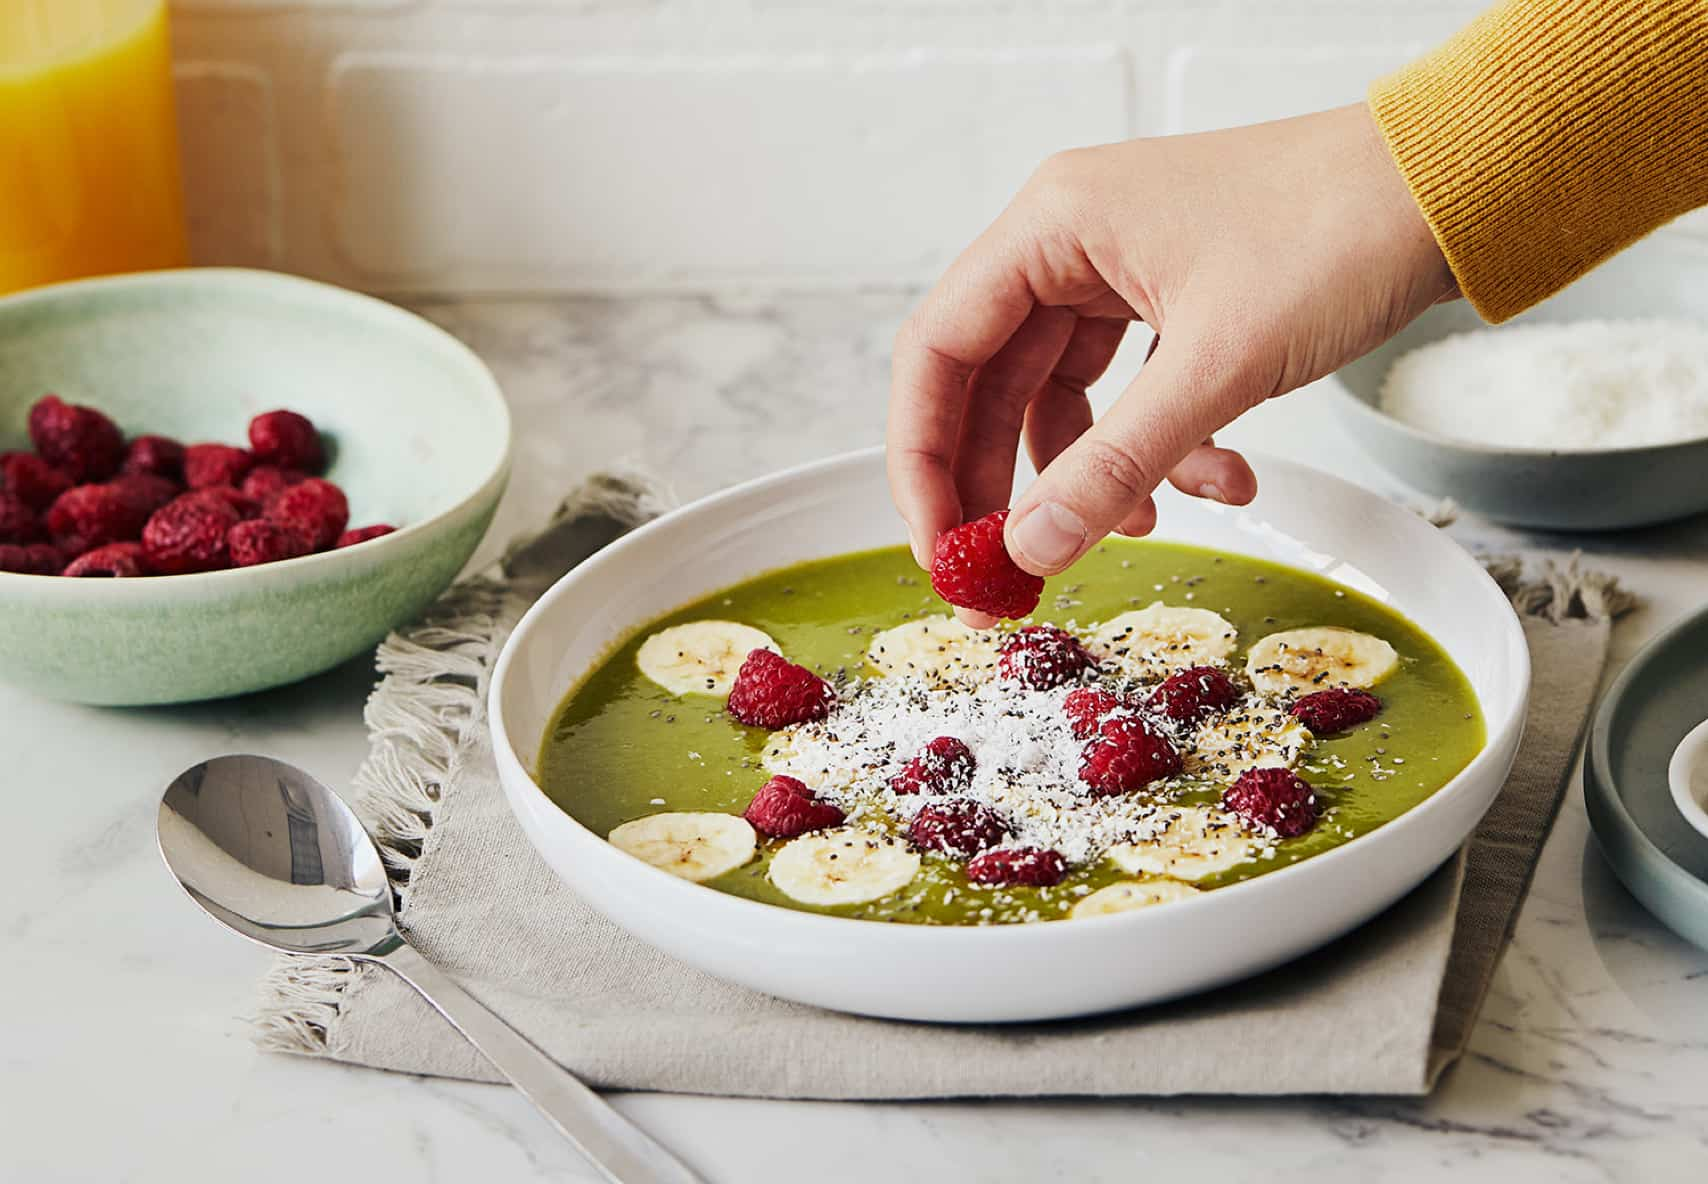 Hand adding raspberry to green matcha smoothie bowl with banana slices, raspberries and coconut flakes.